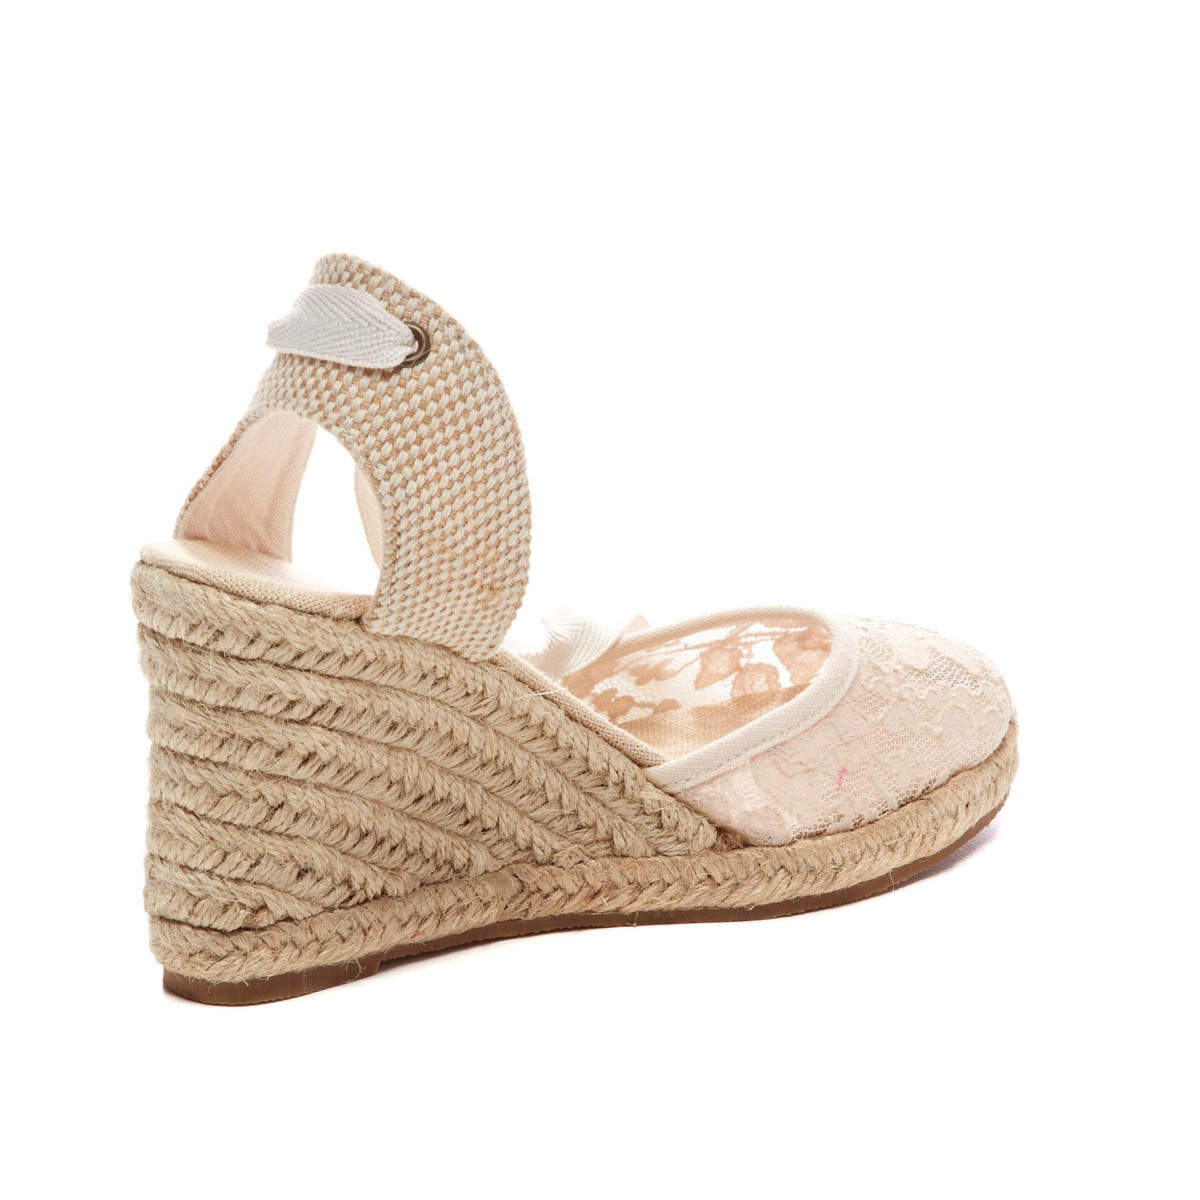 176dd78e5d4 Lyst - Soludos Chantilly Lace Tall Wedge in Natural